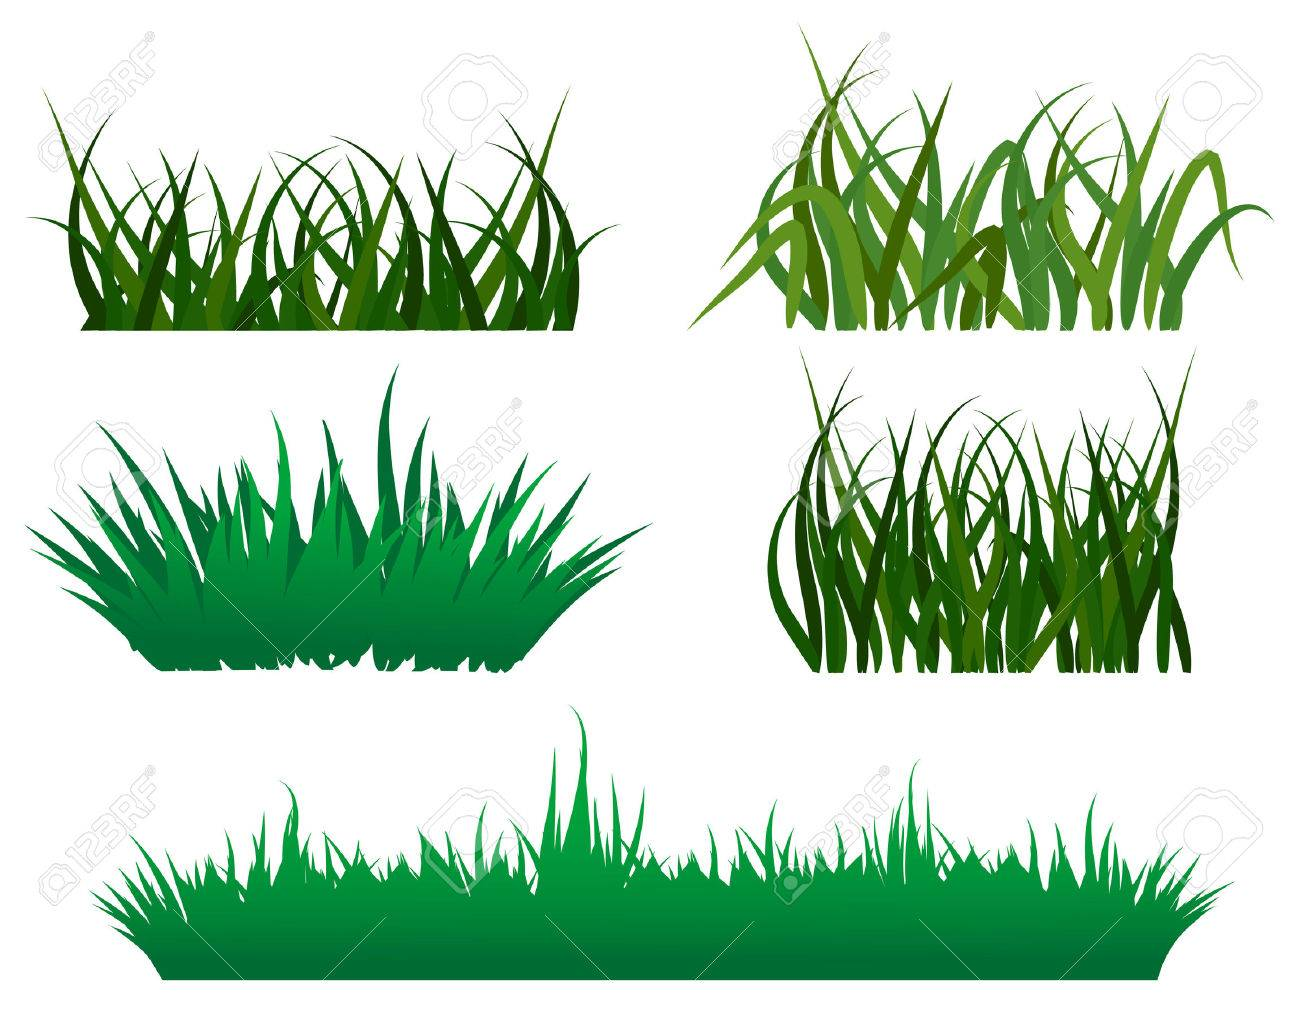 Green grass elements for design and decorate Stock Vector - 6554179